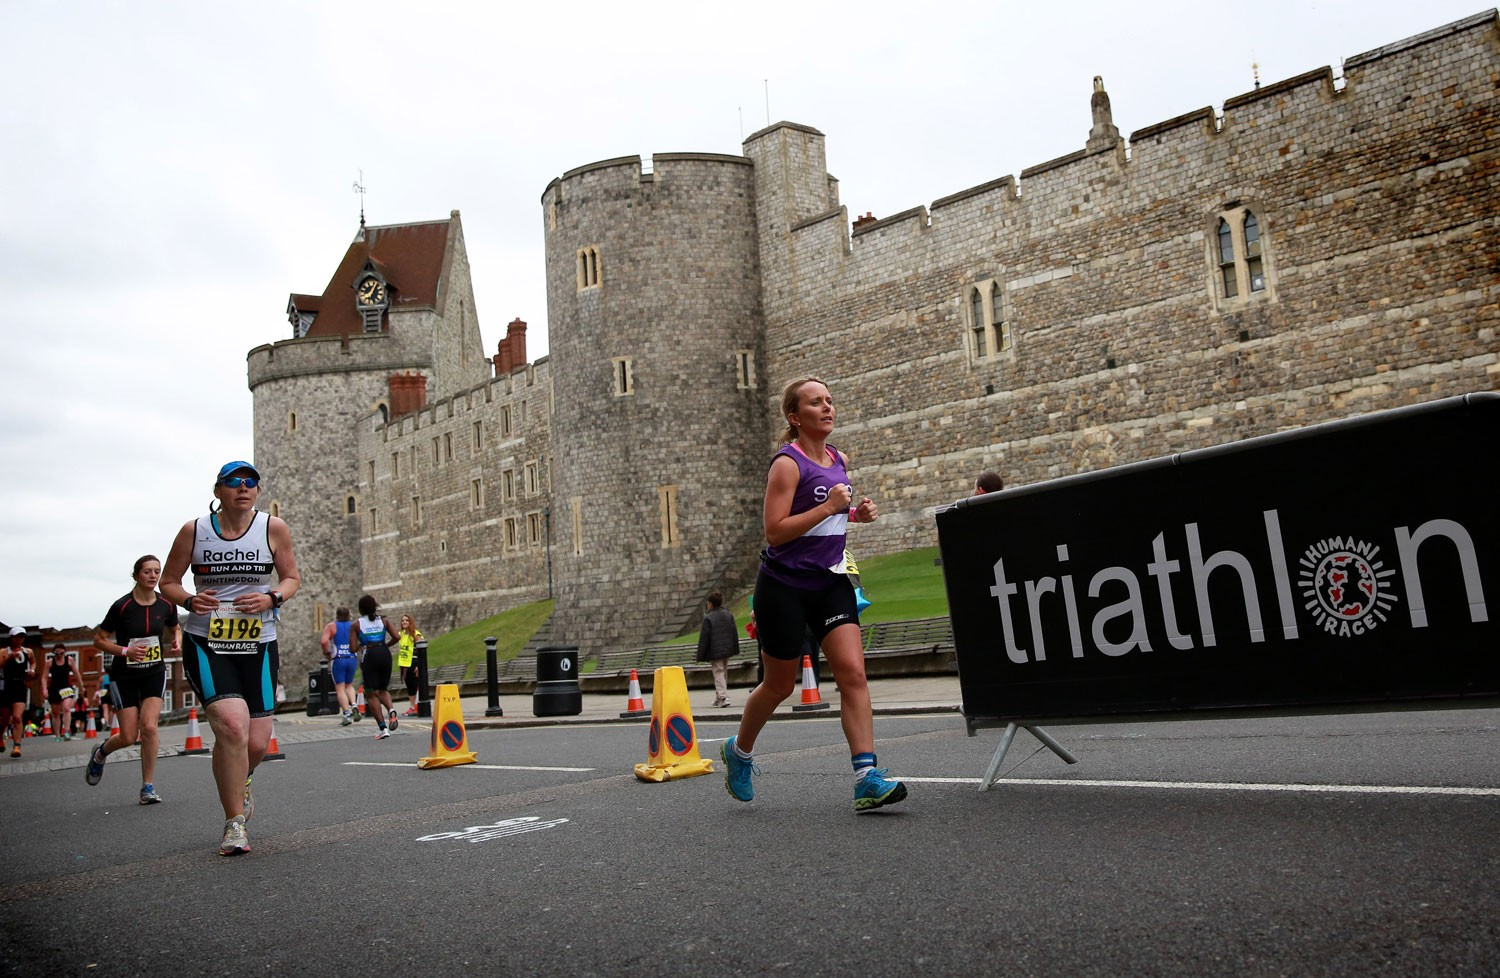 Royal Windsor Triathlon - image 1